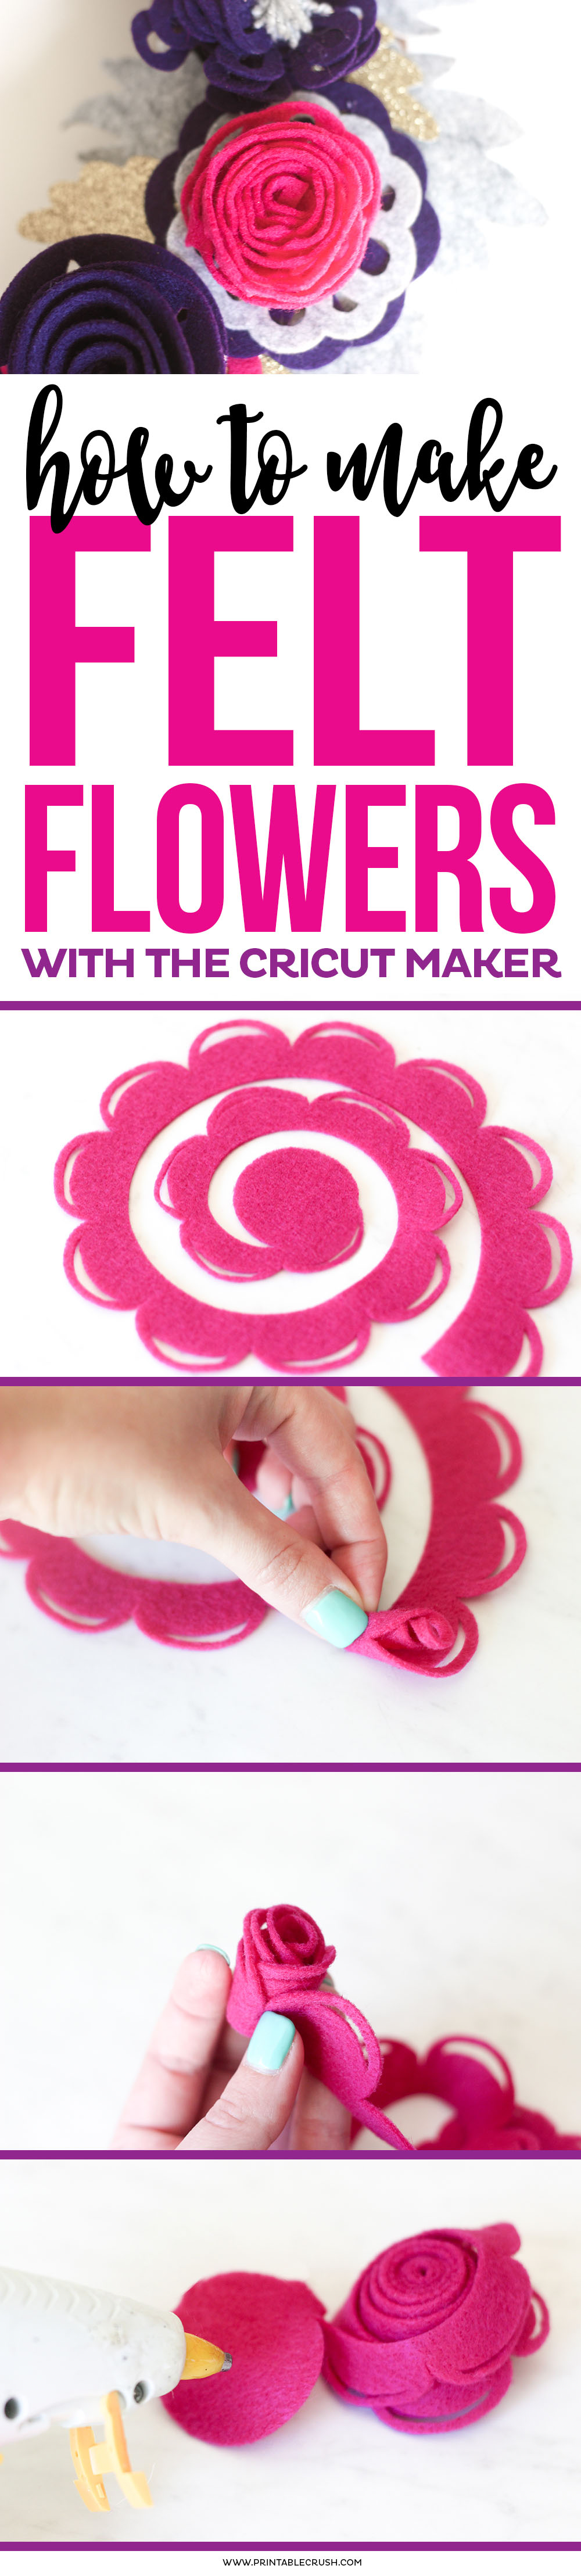 Learn how to make How to Make Felt Roses with the Cricut Maker to create a beautiful fall wreath or any other type of decor you would like! via @printablecrush